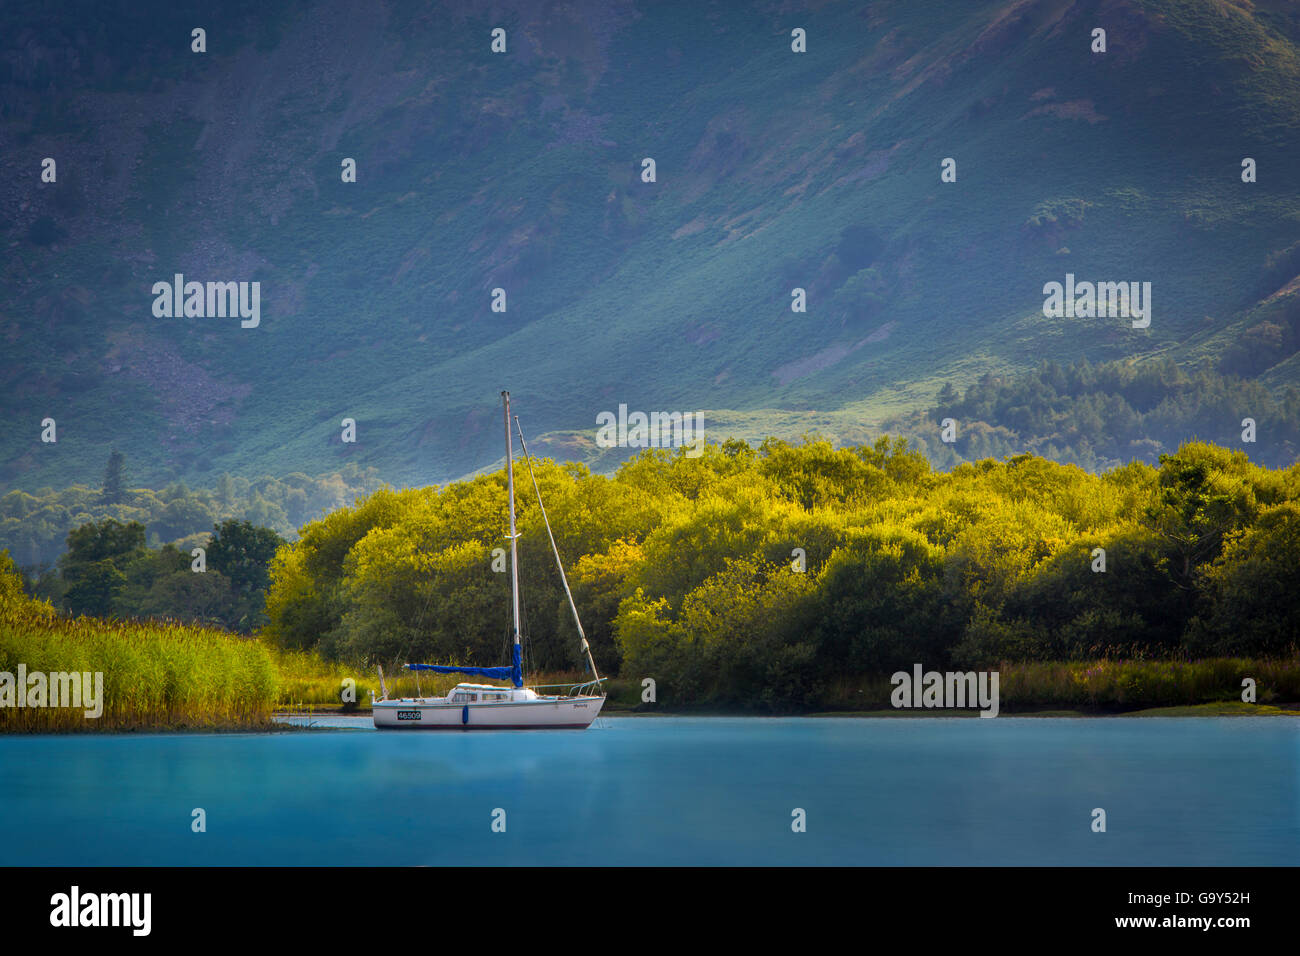 Evening light over sailboat on Derwentwater, the Lake District, Cumbria, England - Stock Image